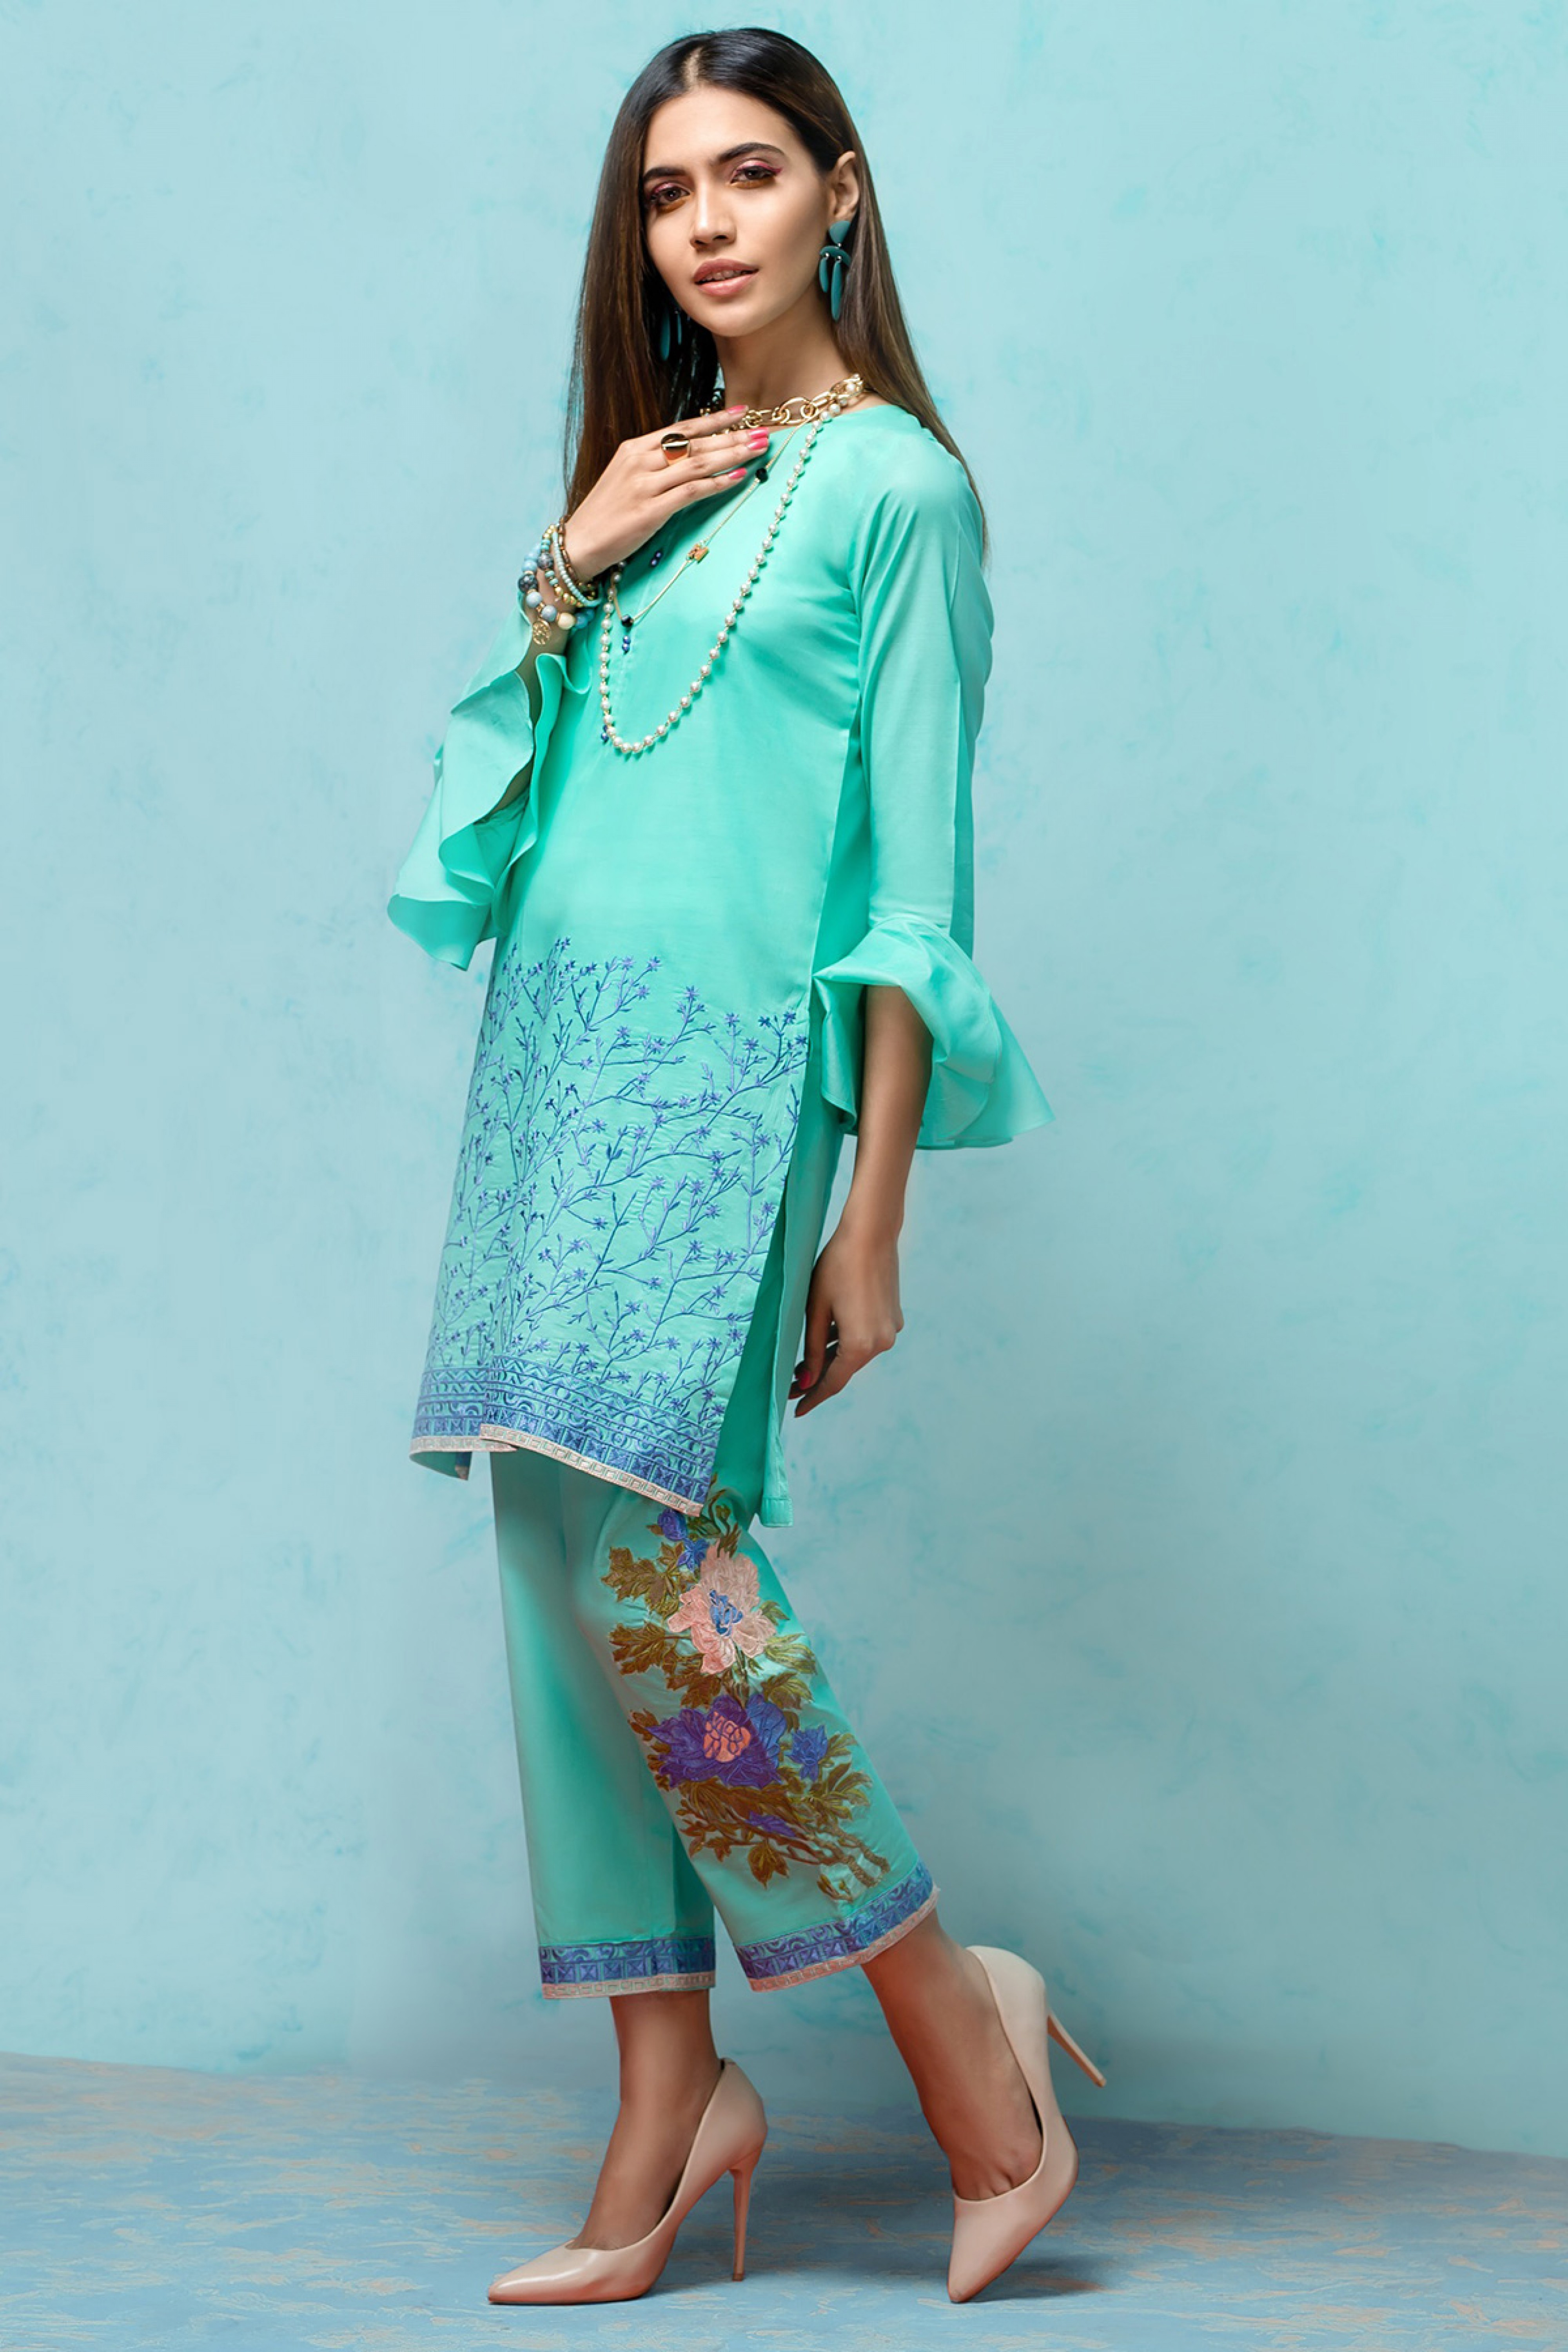 Blossom Dreams (Embroidered Shirt & Trouser)